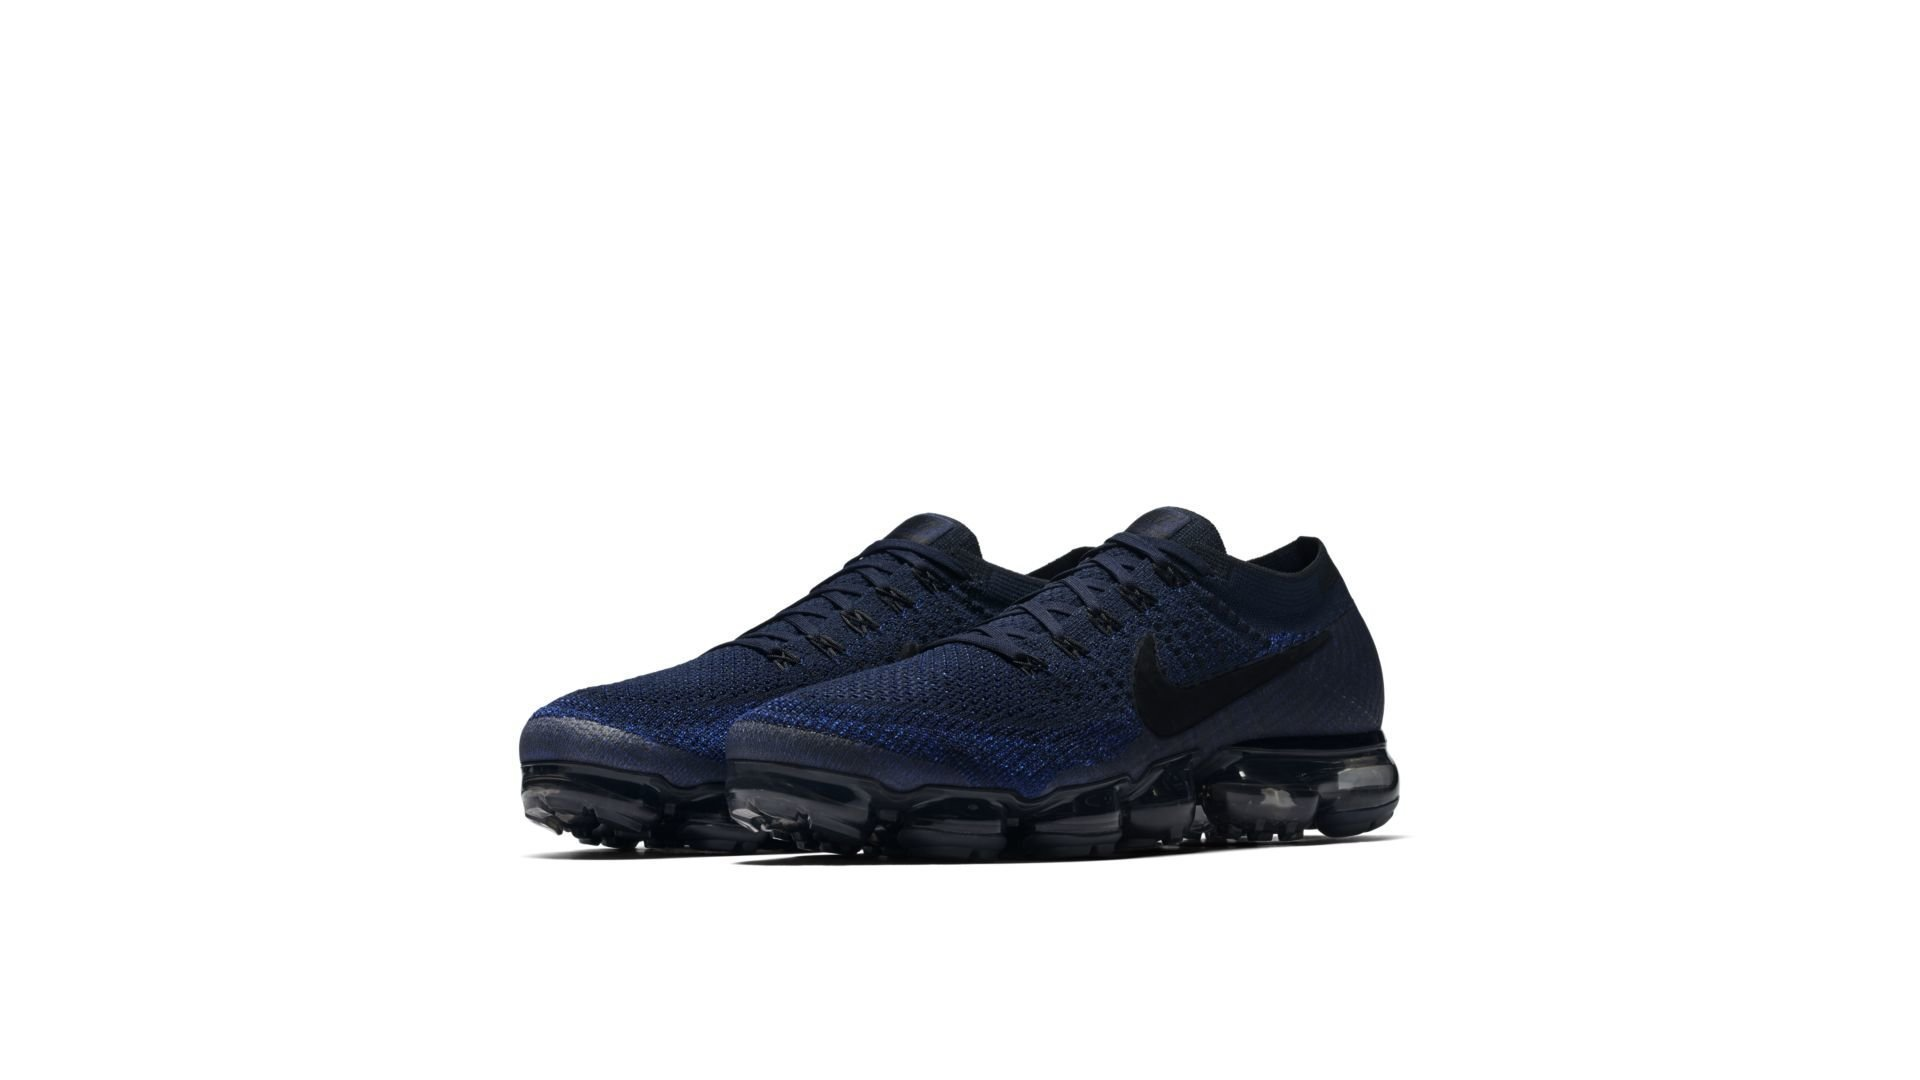 Nike Air Vapormax Navy (849558-400)